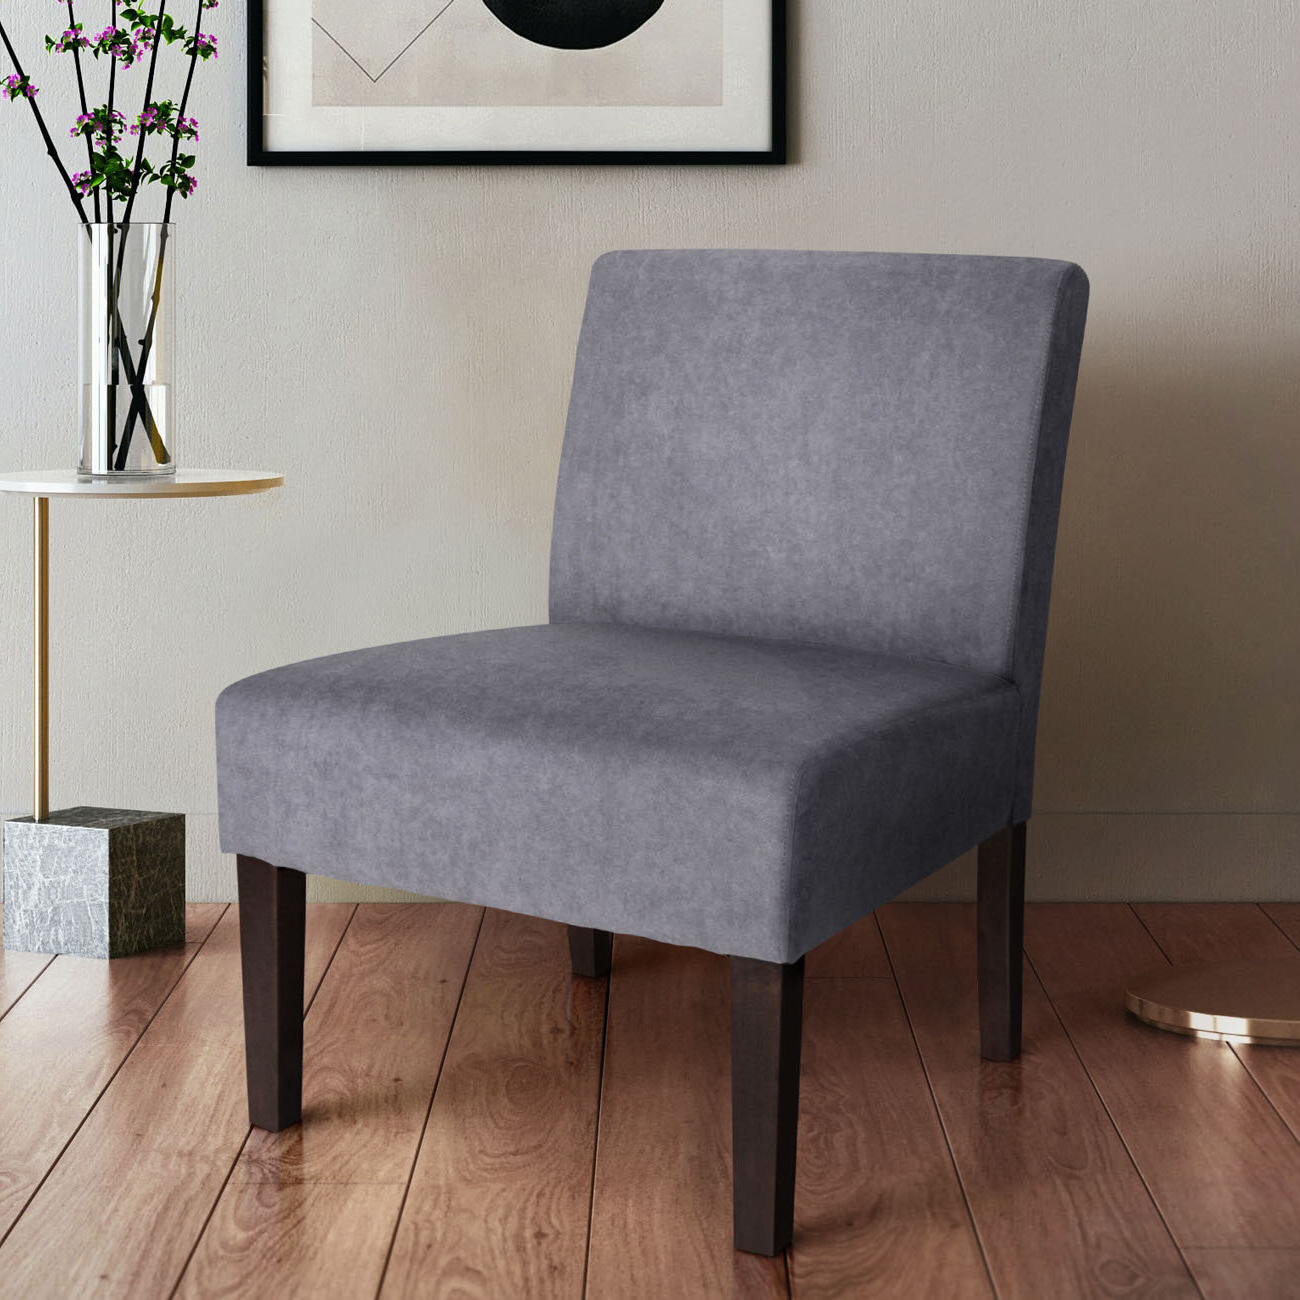 Gozzoli Slipper Chairs Regarding Most Recent Harland Modern Armless Slipper Chair (View 4 of 20)